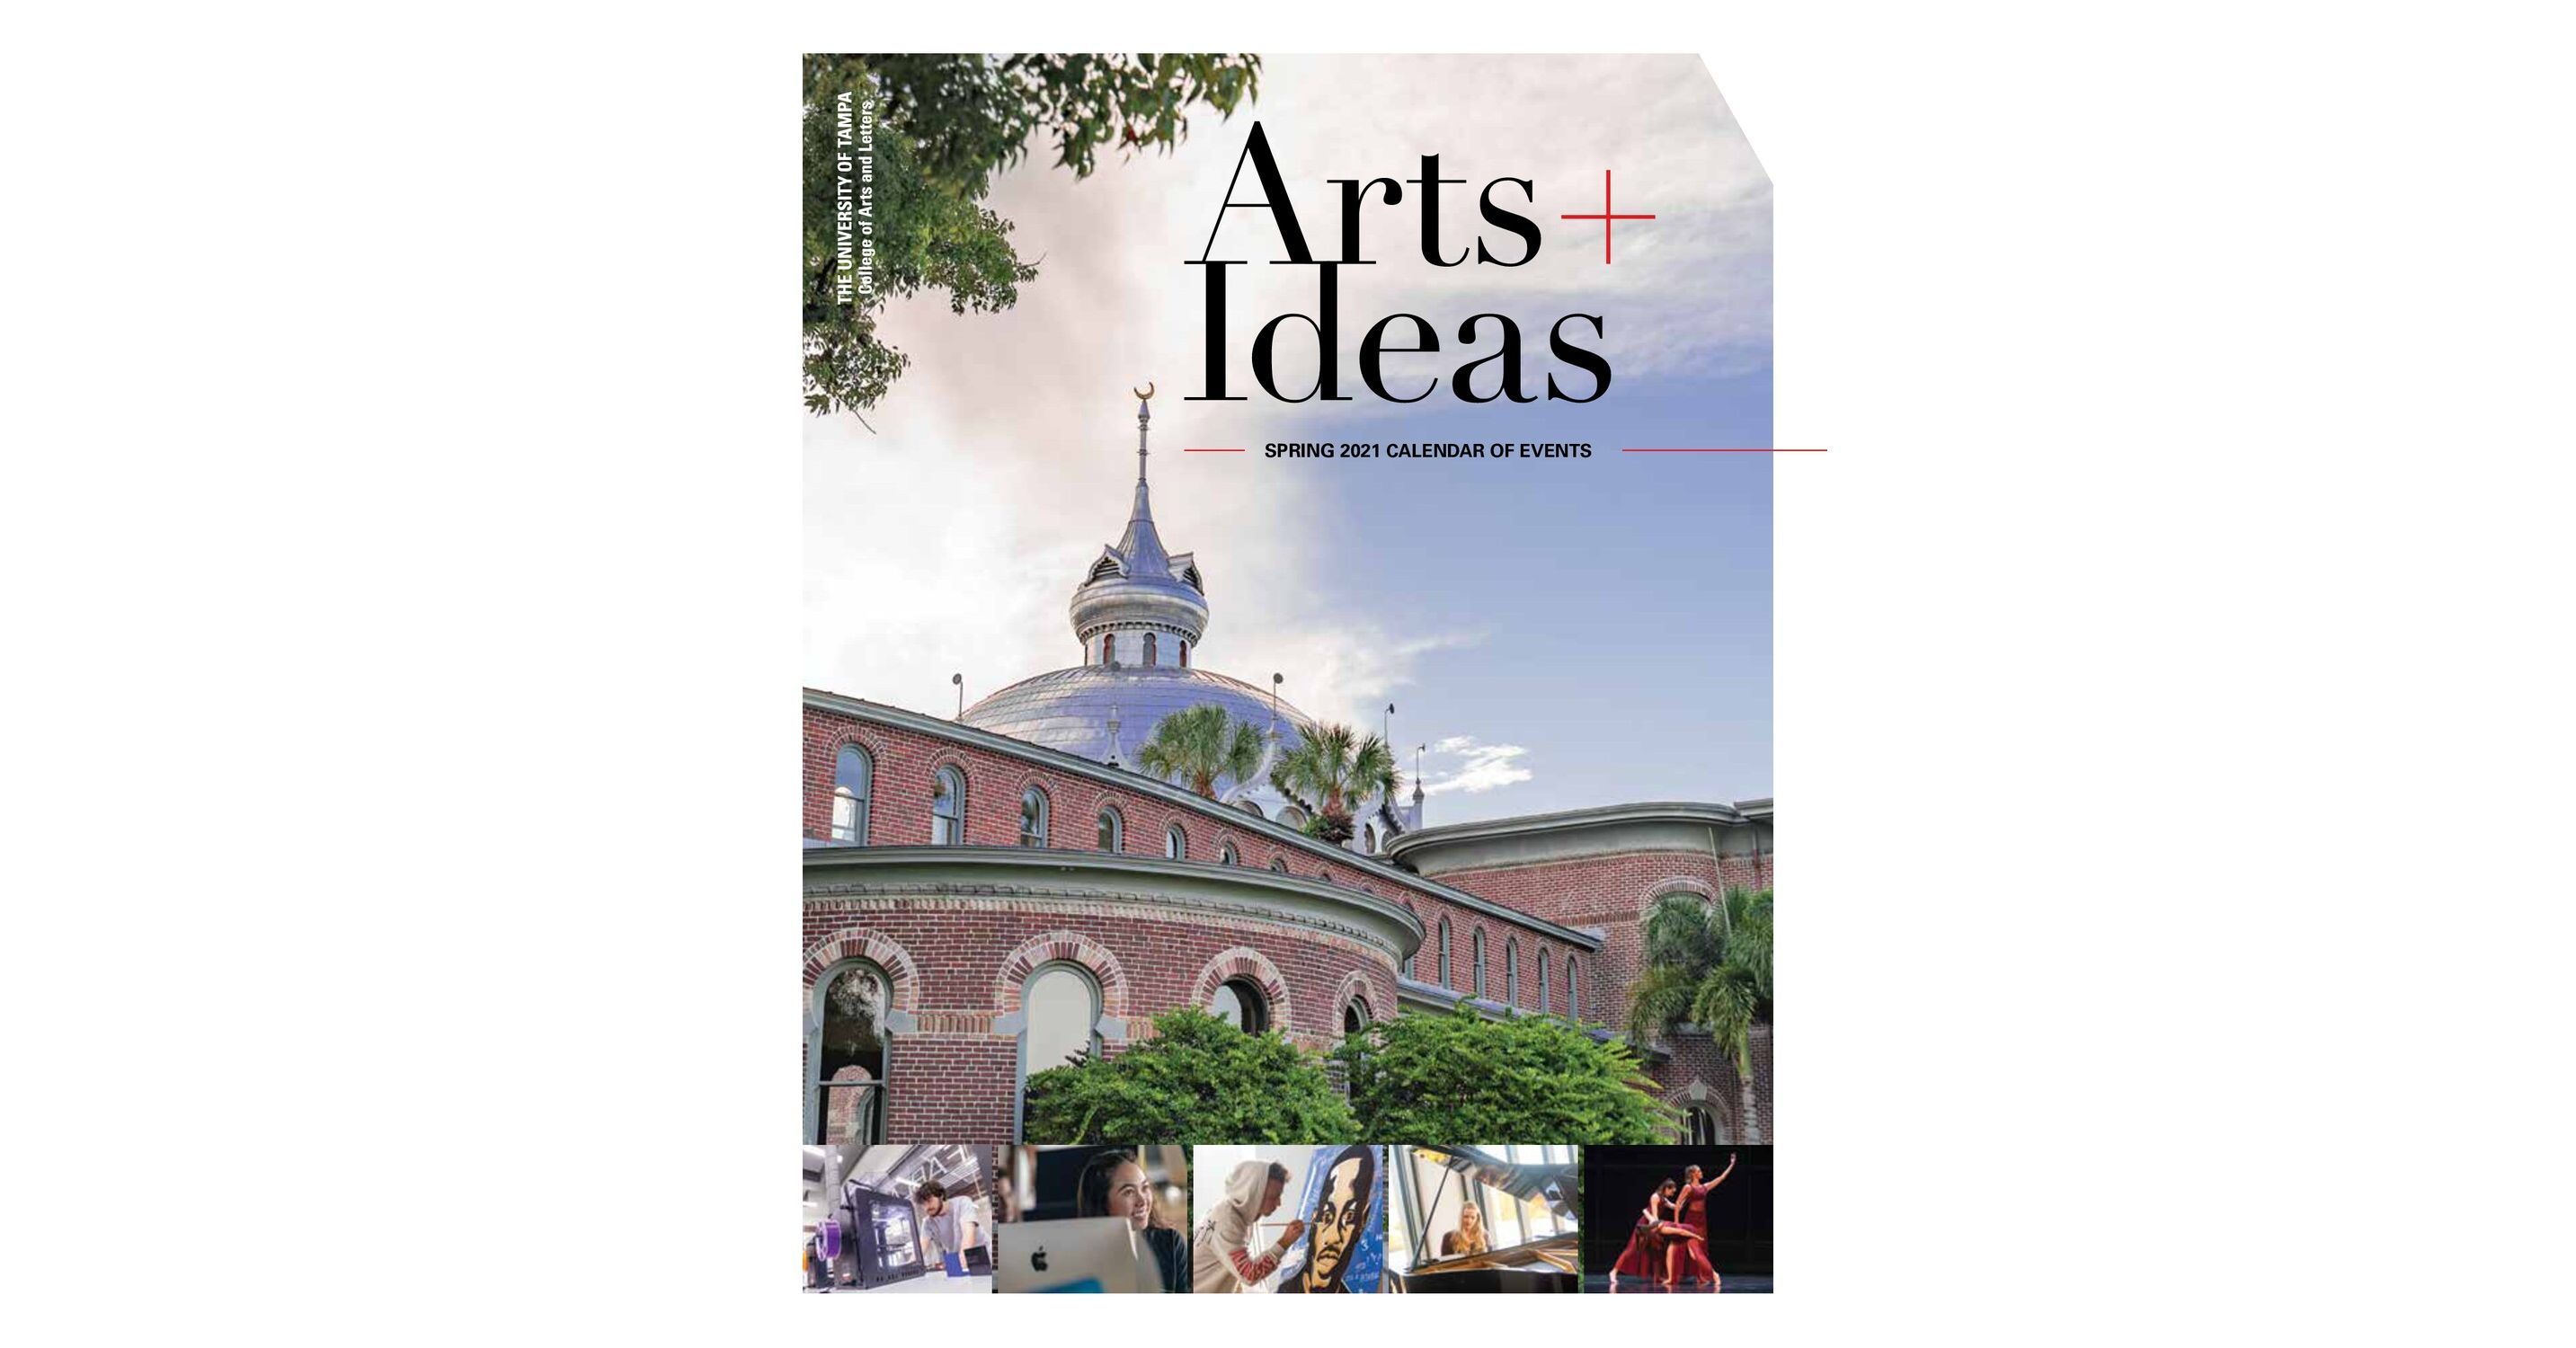 University Of Tampa Calendar.Cal Arts Ideas Eventsbrochure 2018 2019